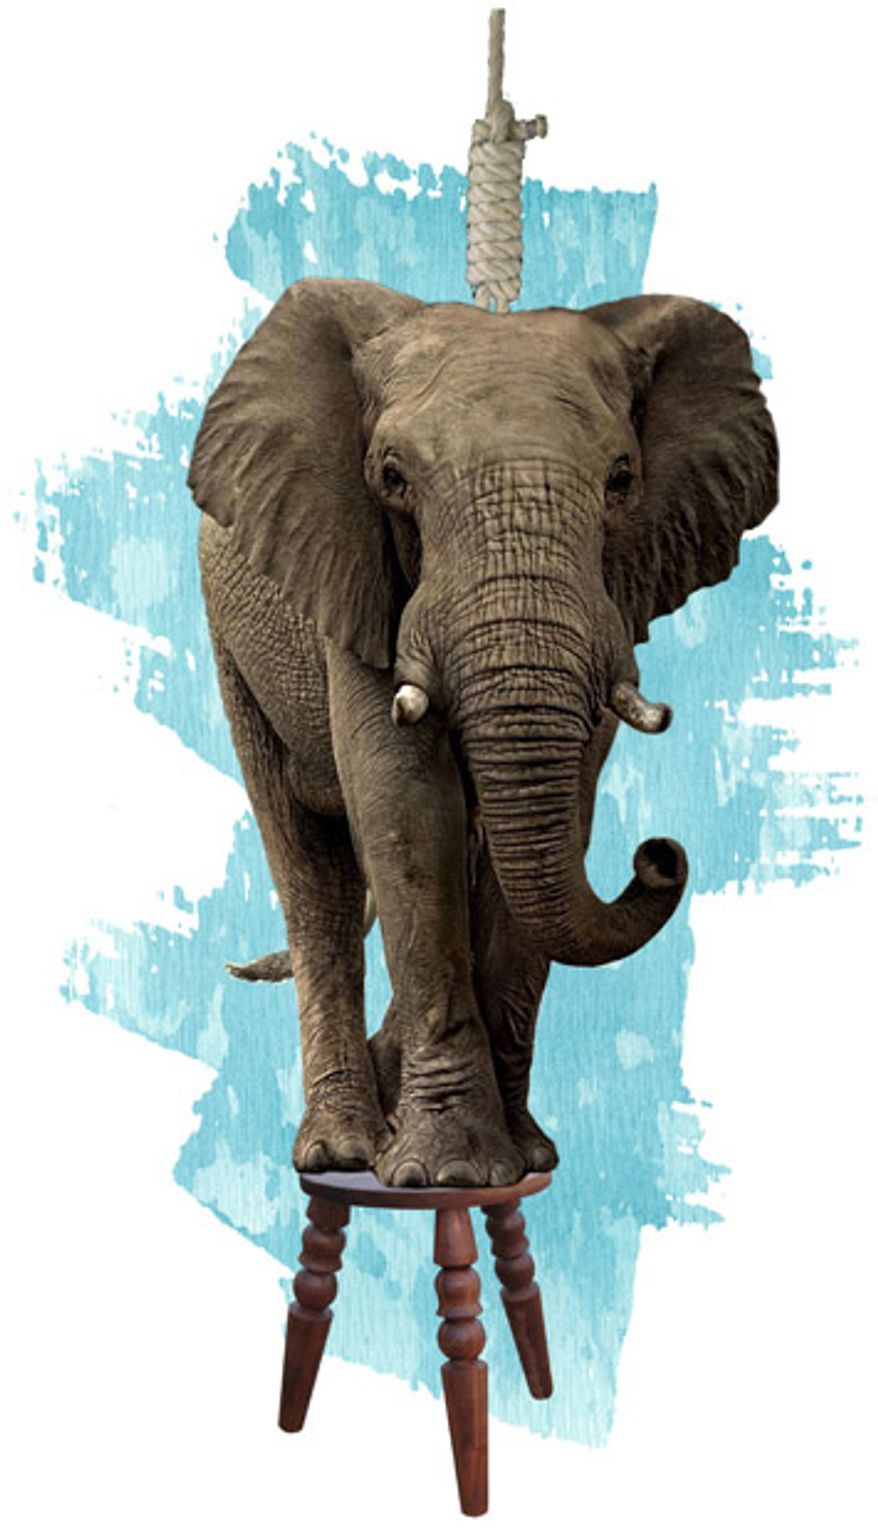 Illustration: Hanging elephant by Greg Groesch for The Washington Times